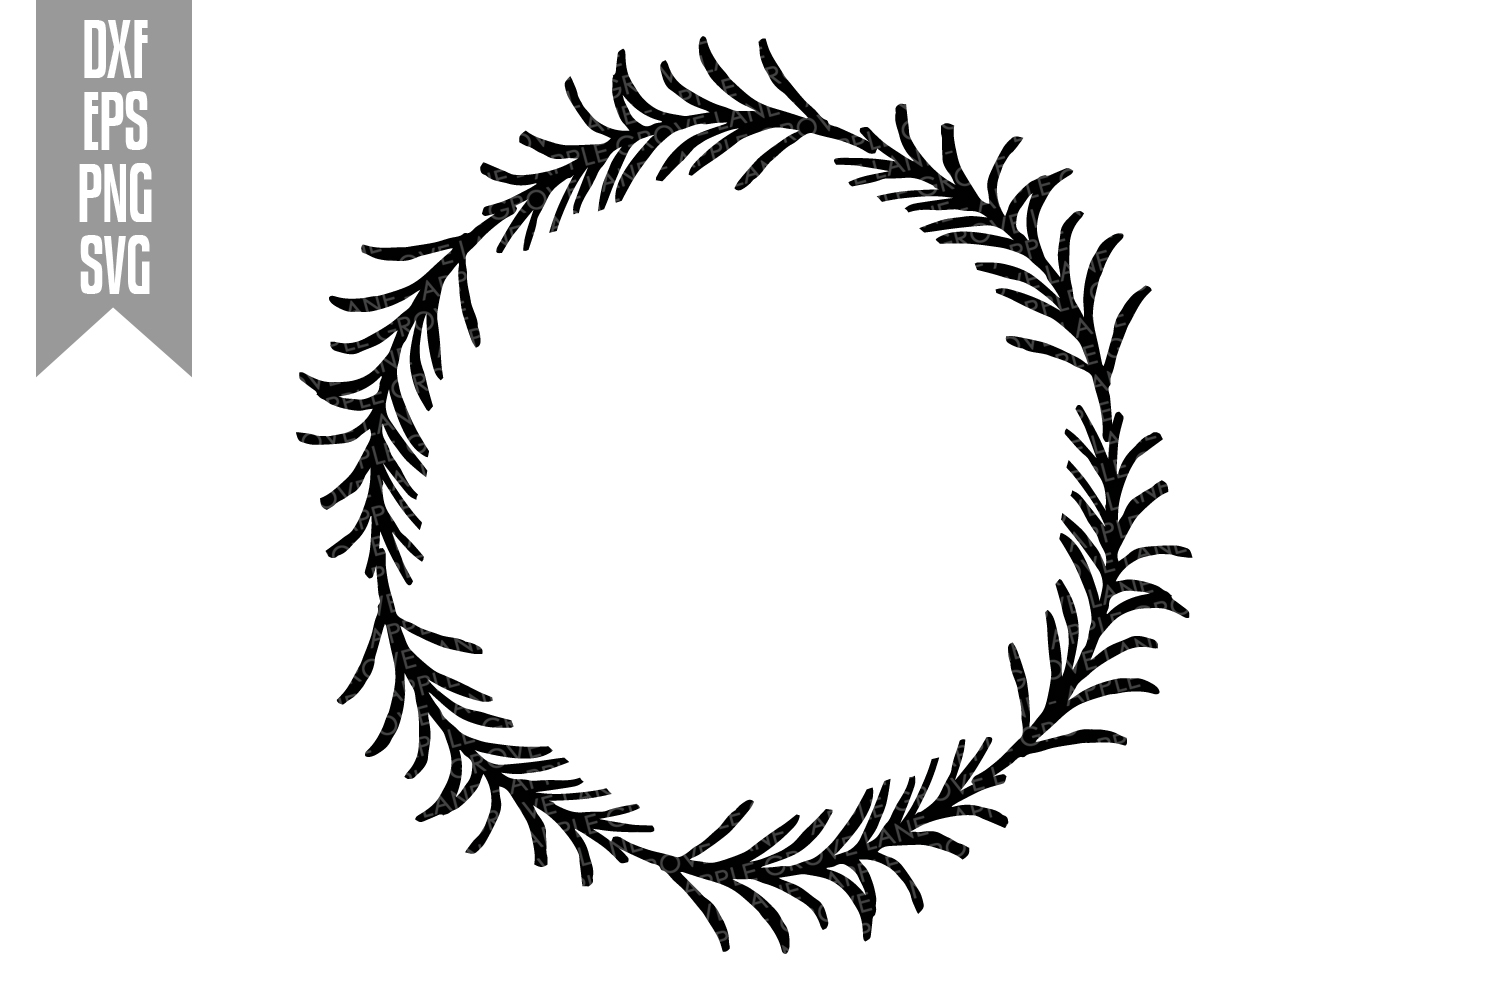 Wreath Svg Bundle - 6 designs included - Svg Cut Files example image 8